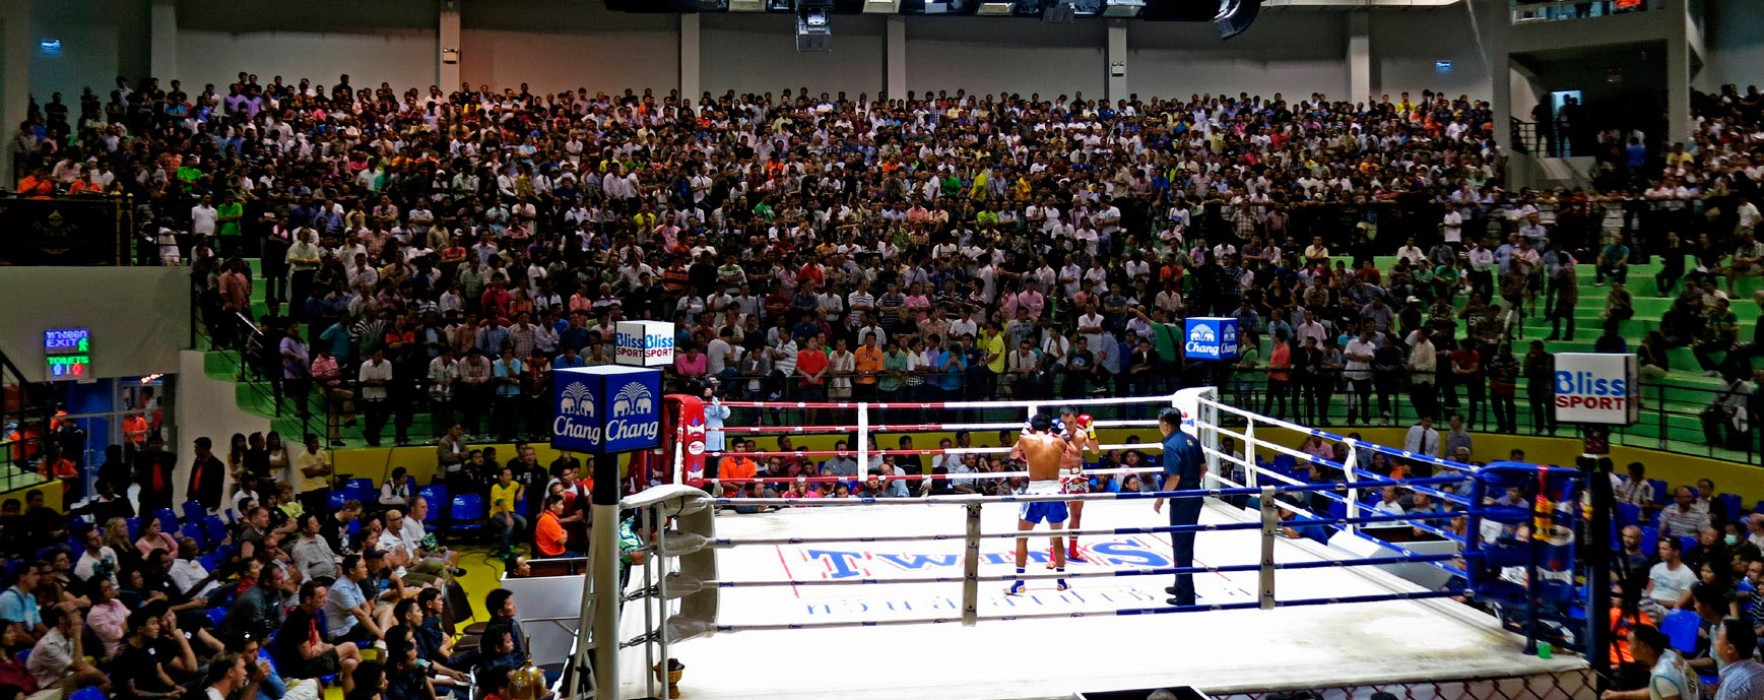 Card: Yodwicha vs Sensatan, Kongsak vs Choochalern etc at Lumpinee Stadium – 30th June 2015